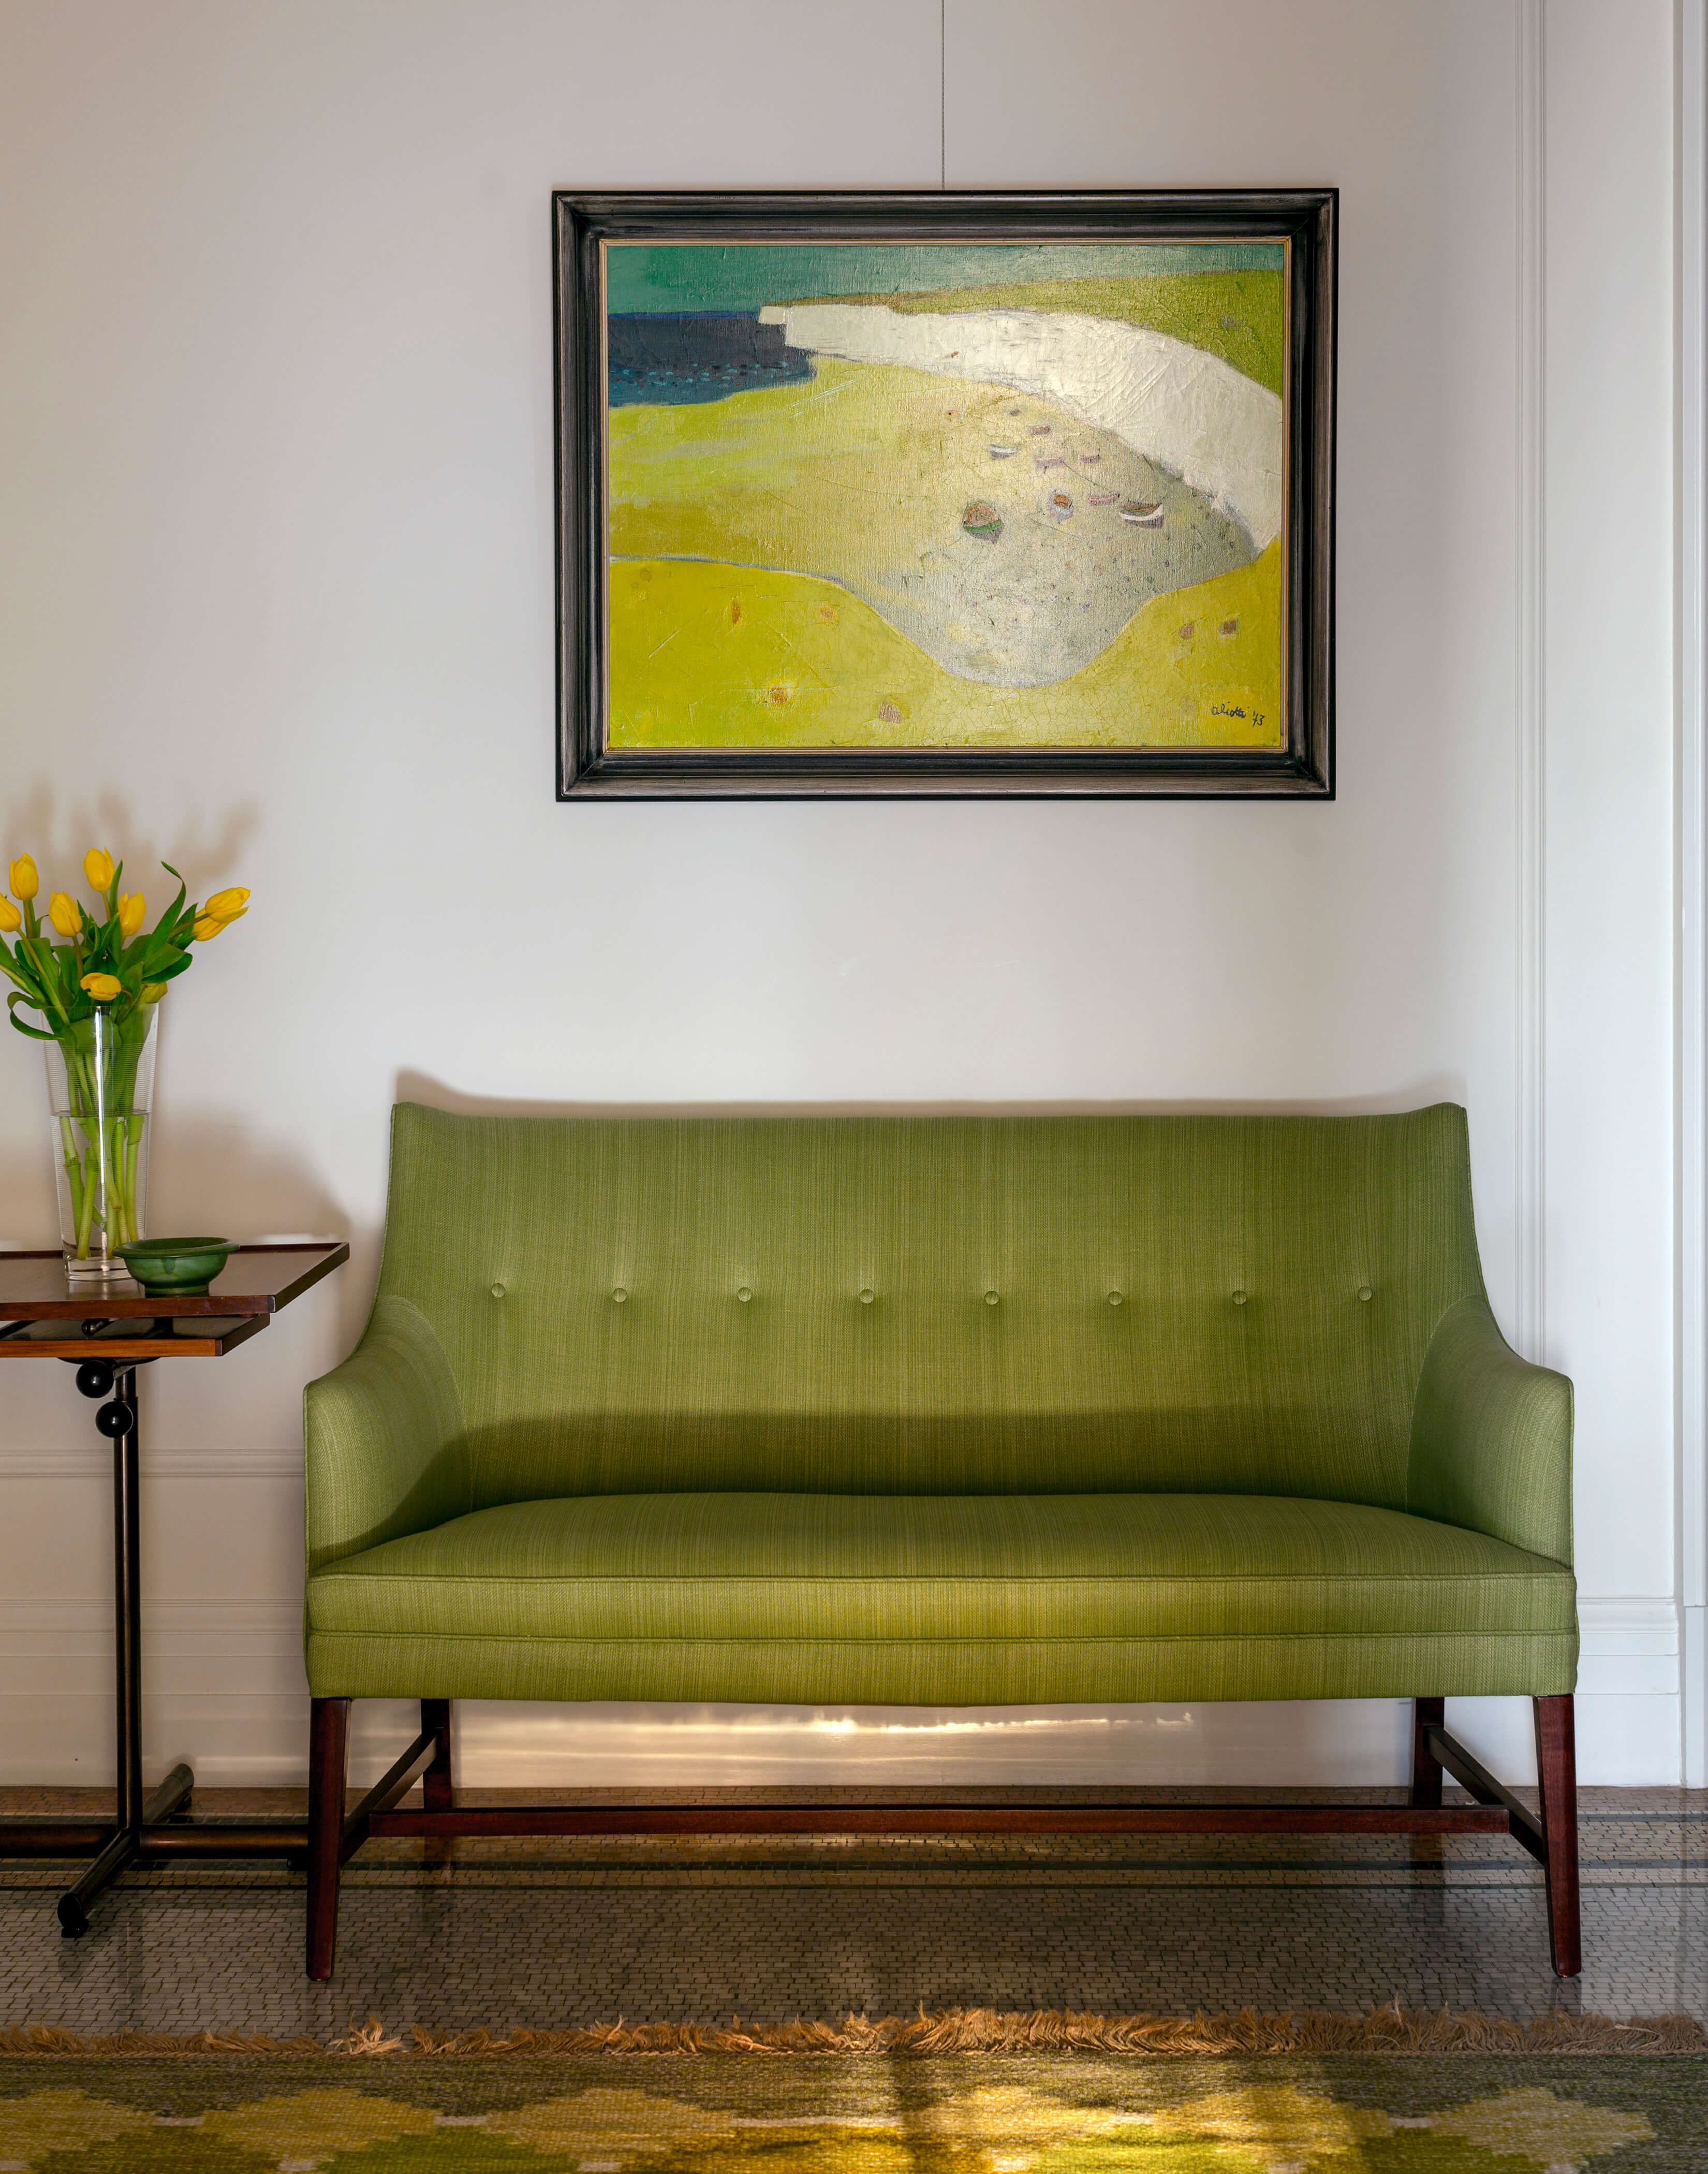 The Apthorp Green Loveseat and Painting